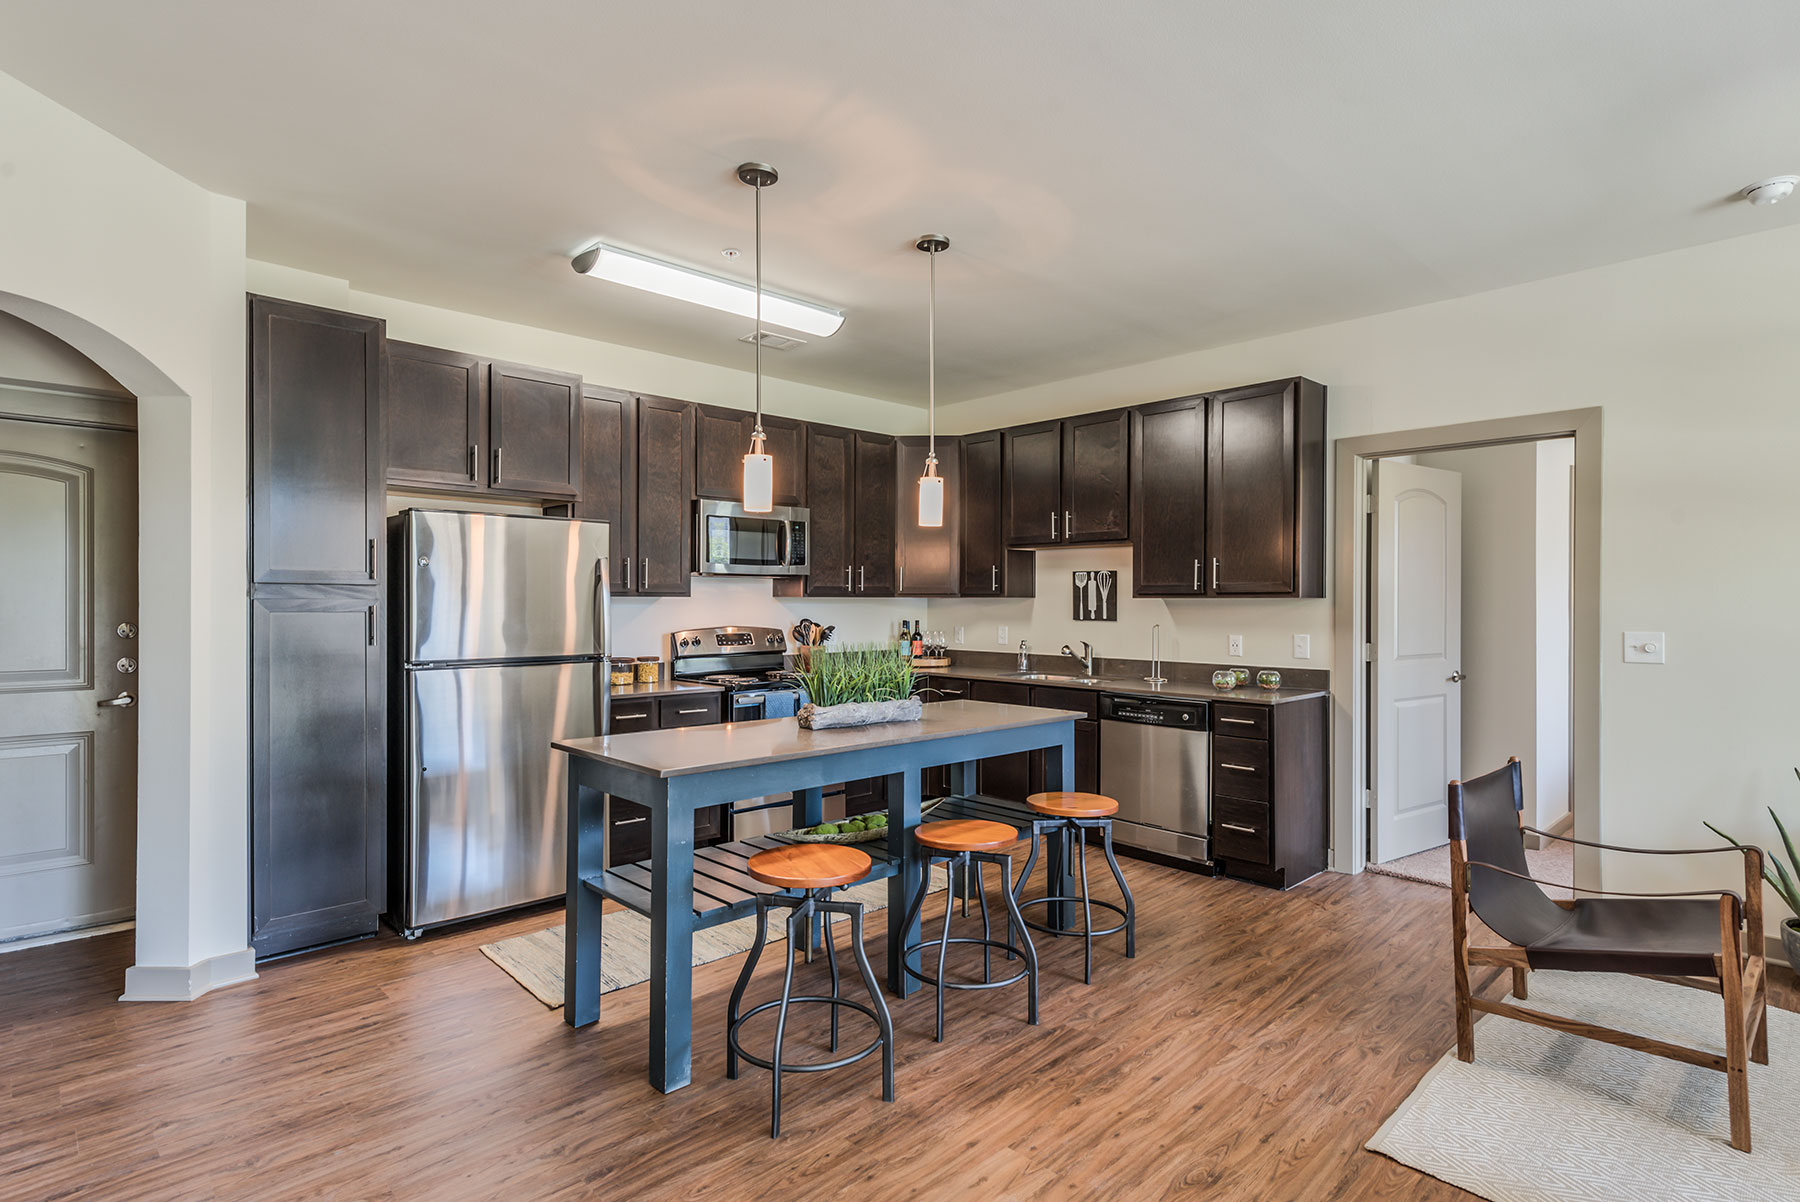 kitchen view with dark wood cabinets, stainless steel appliances, bar-style table and seating and granite countertops